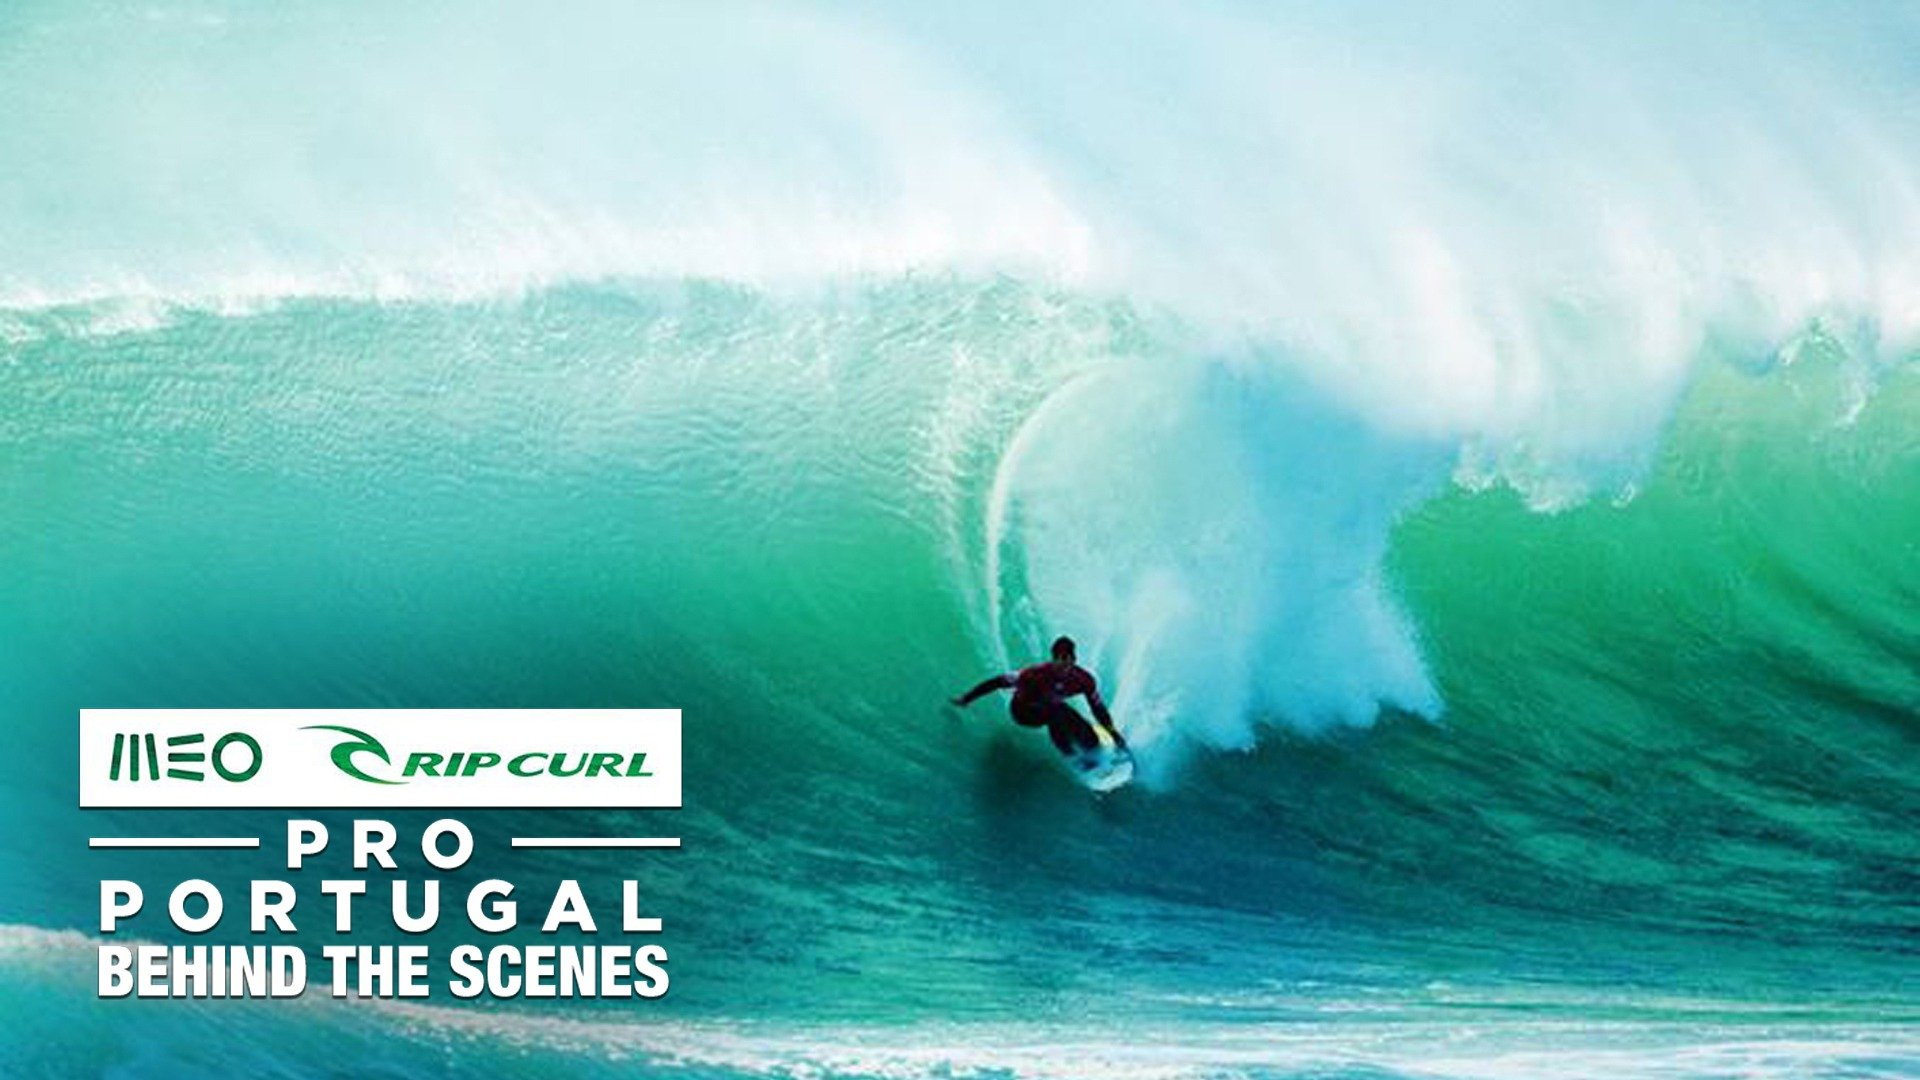 Rip Curl Pro Portugal: Behind the Scenes